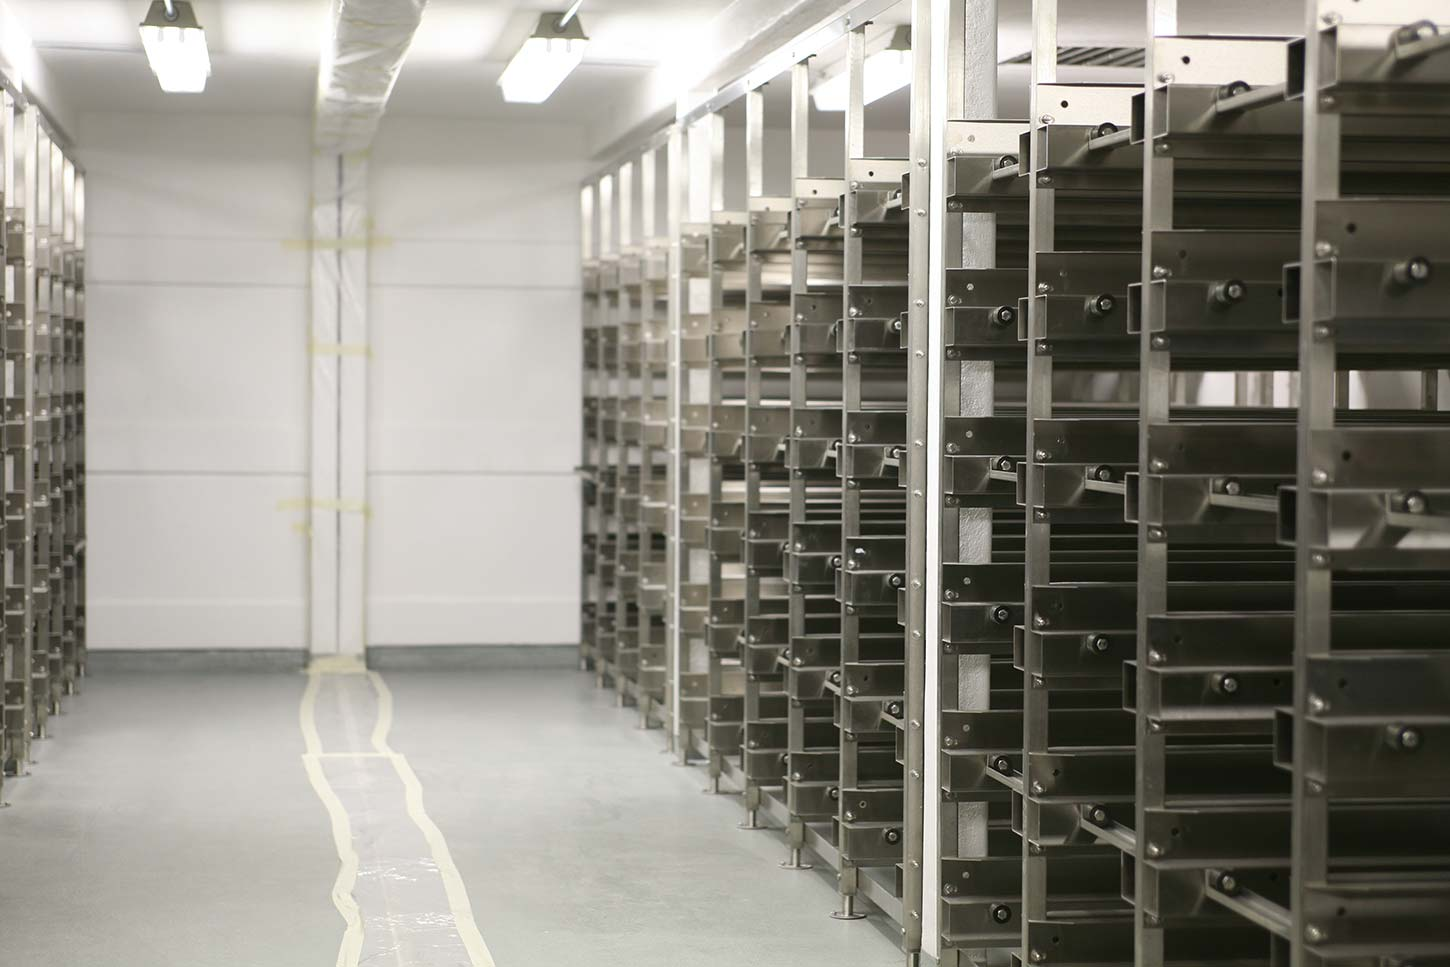 Metal shelving inside cold storage unit